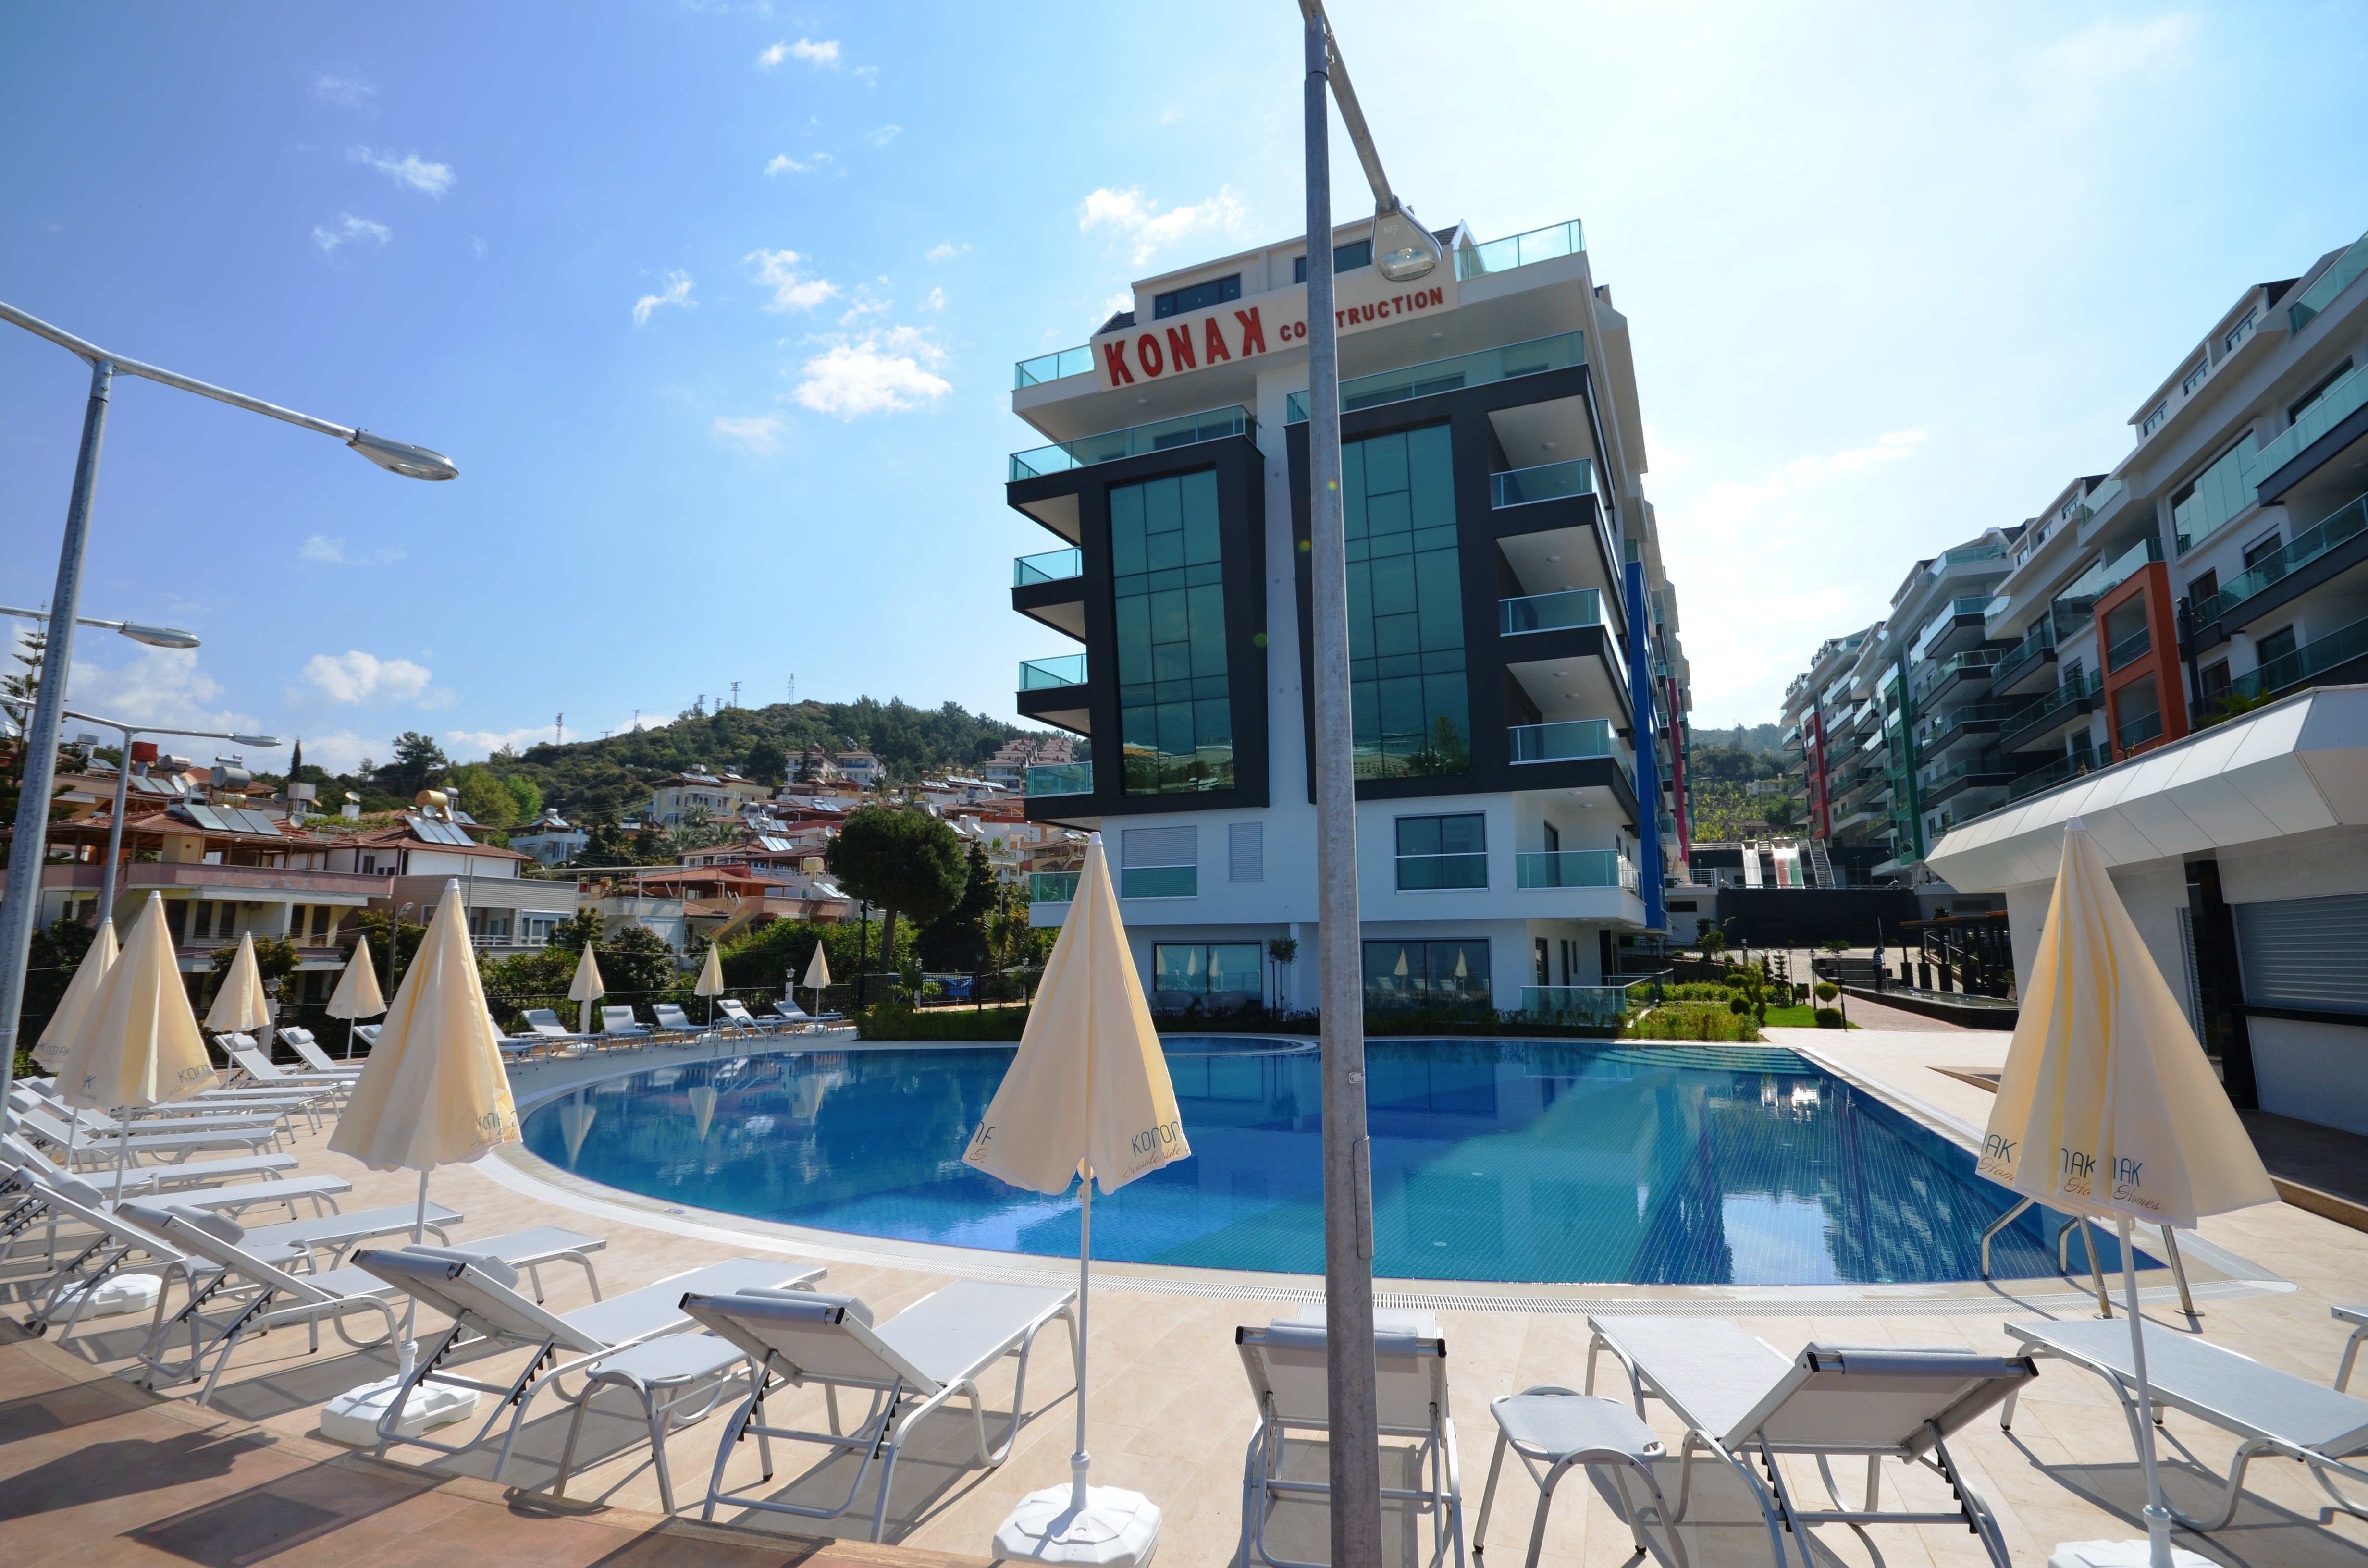 Sale property abroad Apartments from the developer in Alanya